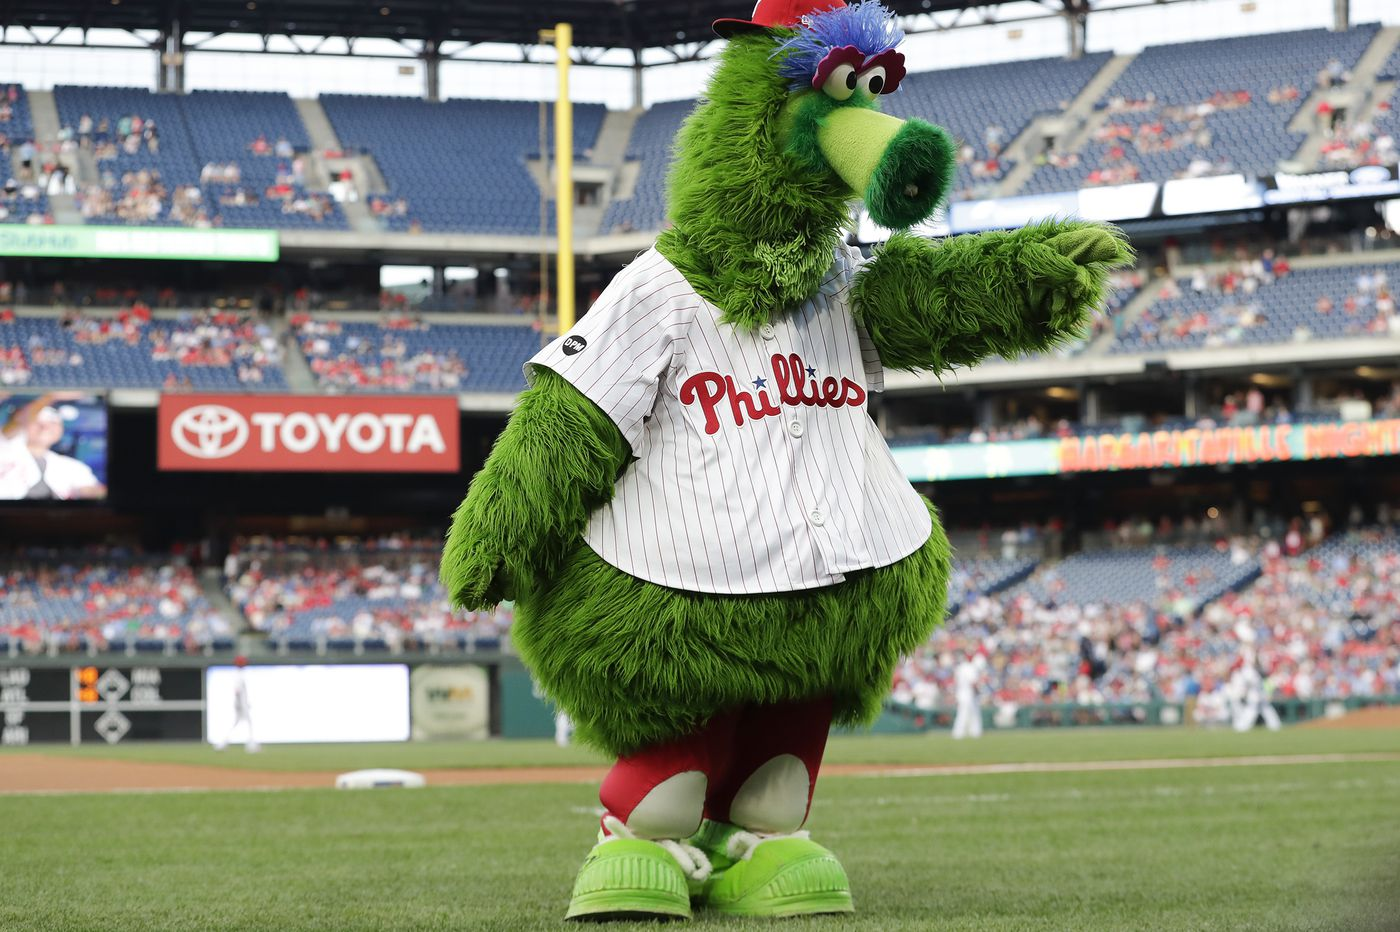 It's time to say thanks and farewell to the Phillie Phanatic   Opinion